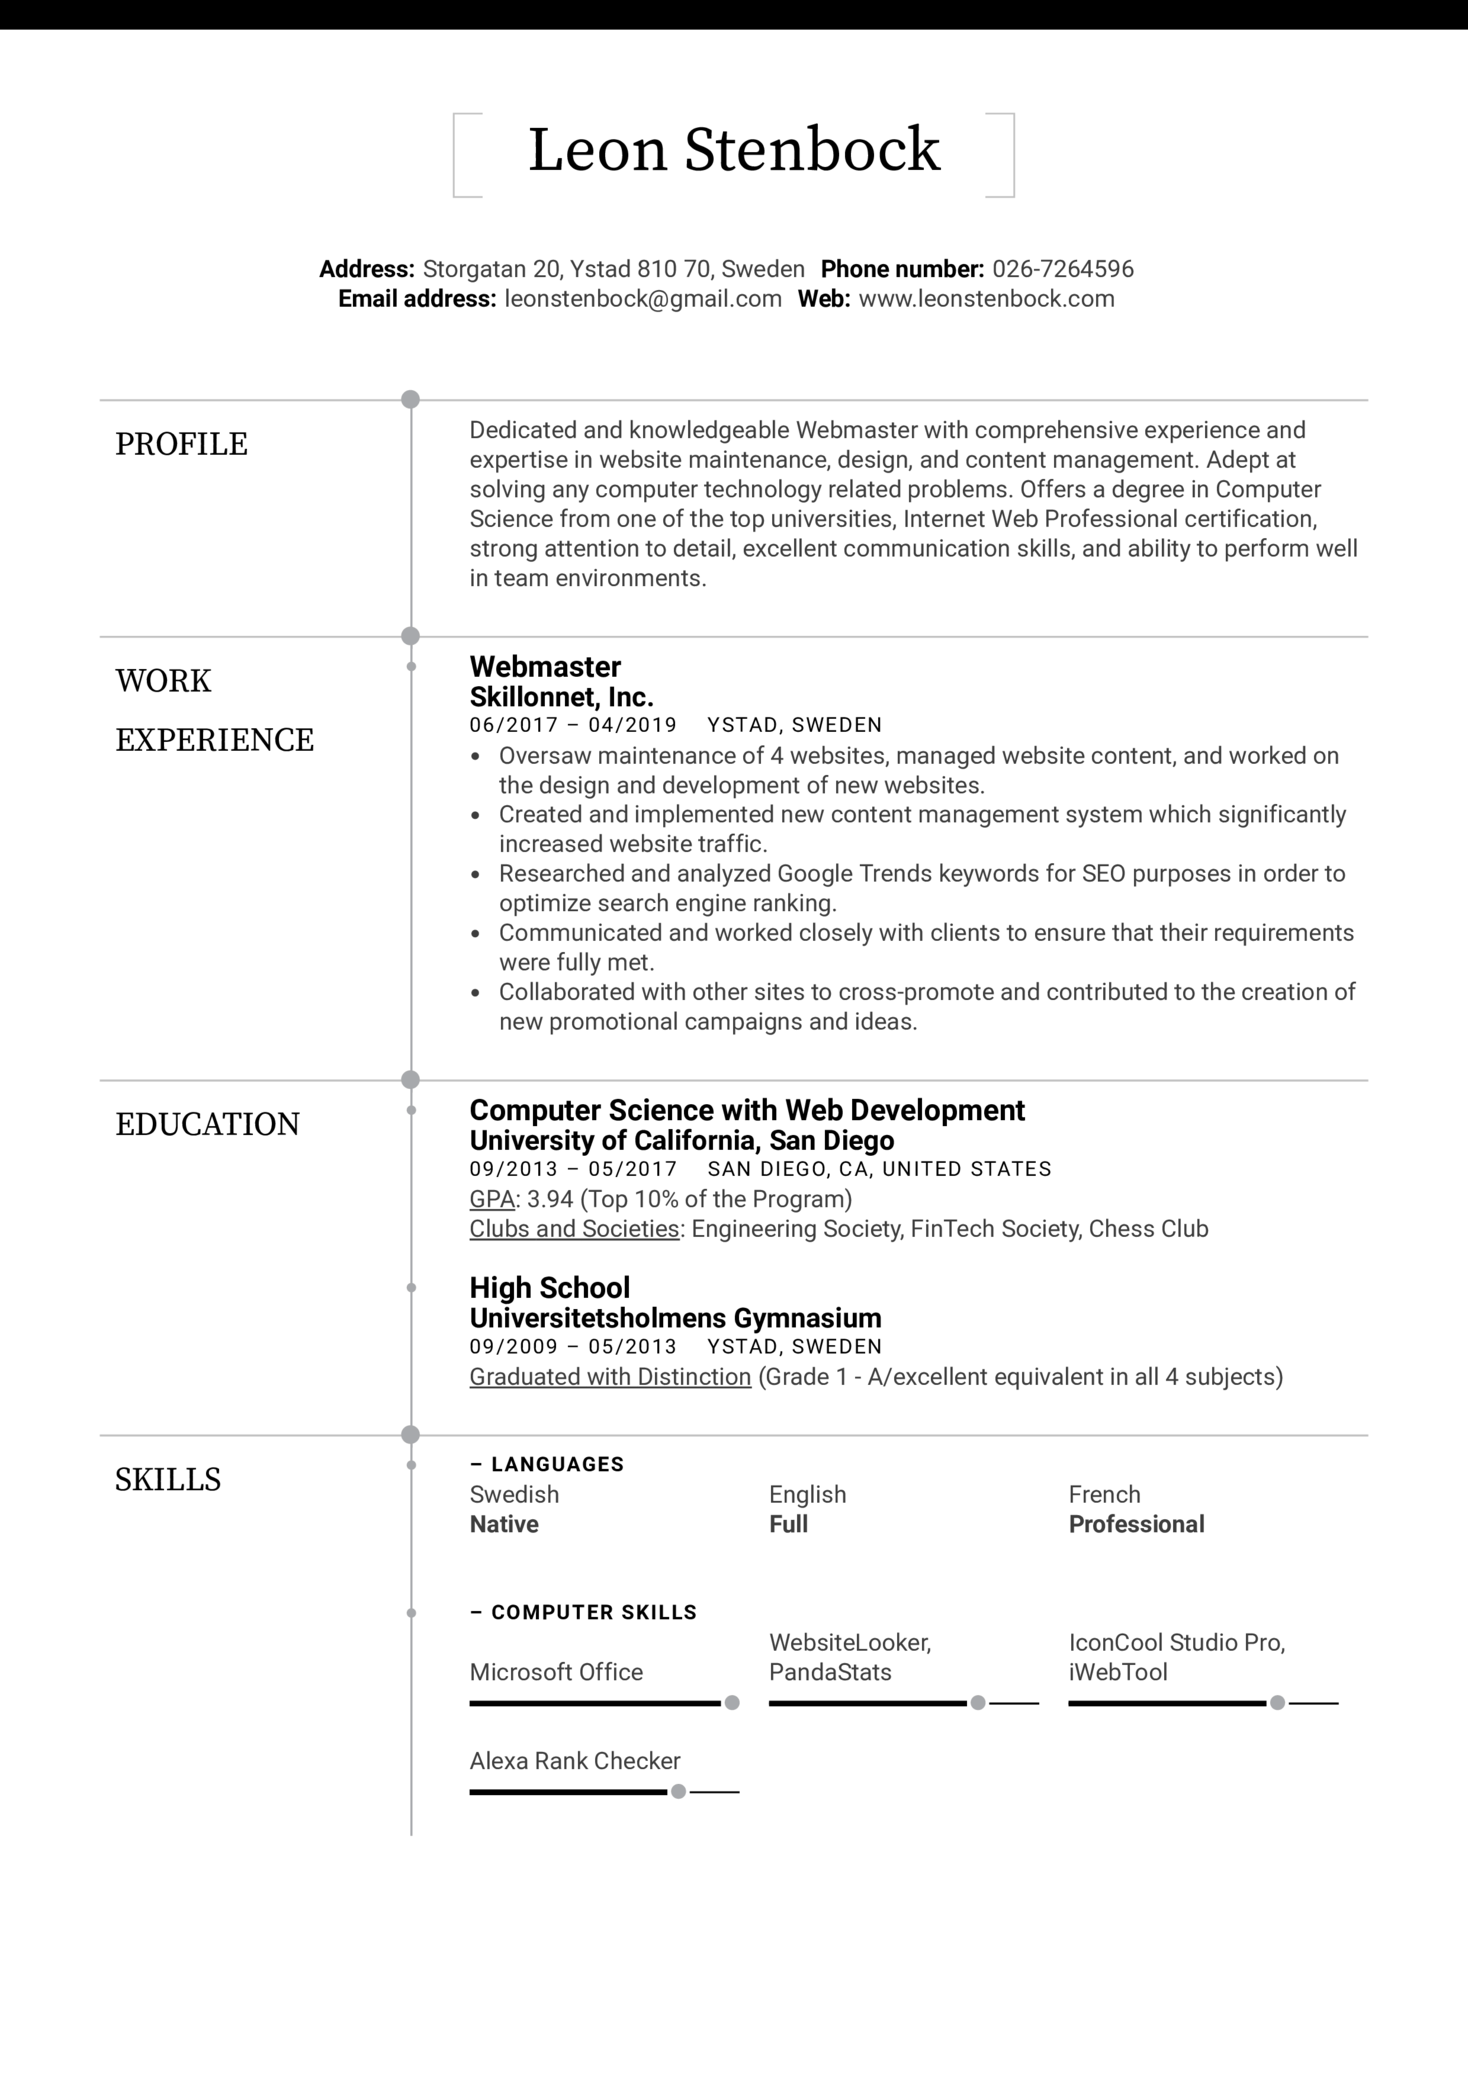 Webmaster Resume Example (Part 1)